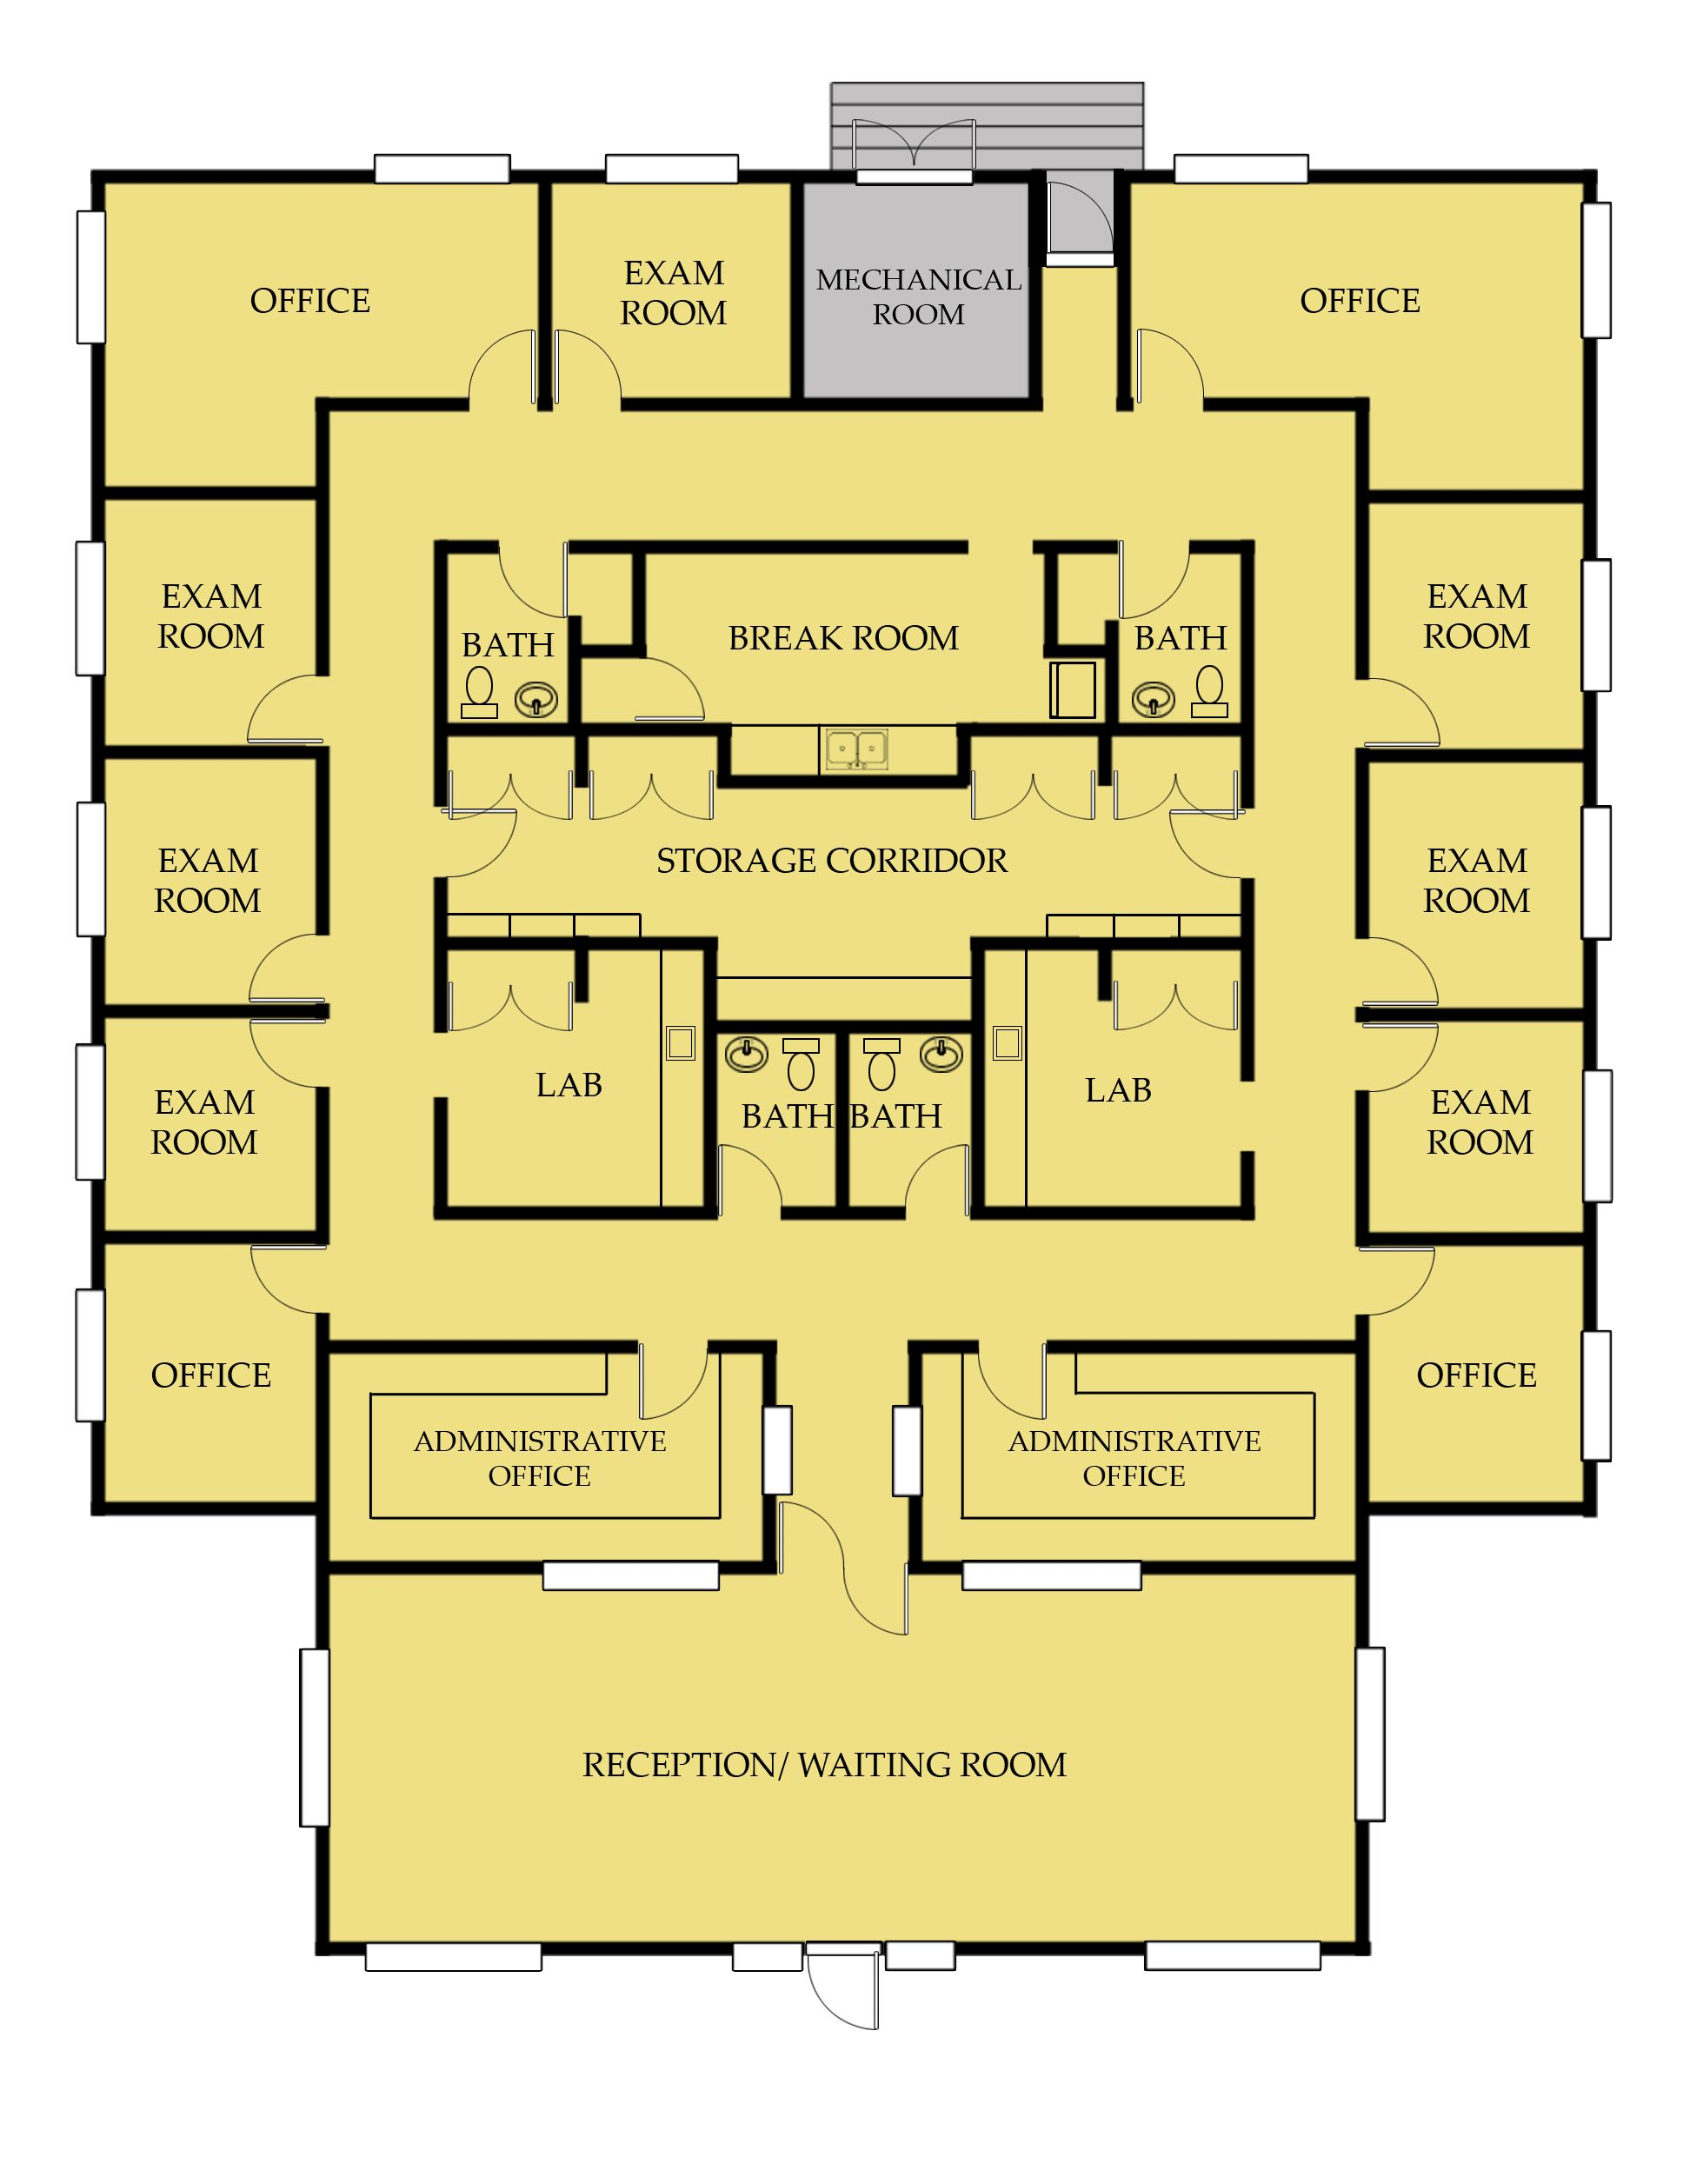 Medical office building floor plans medical pinterest Room layout builder